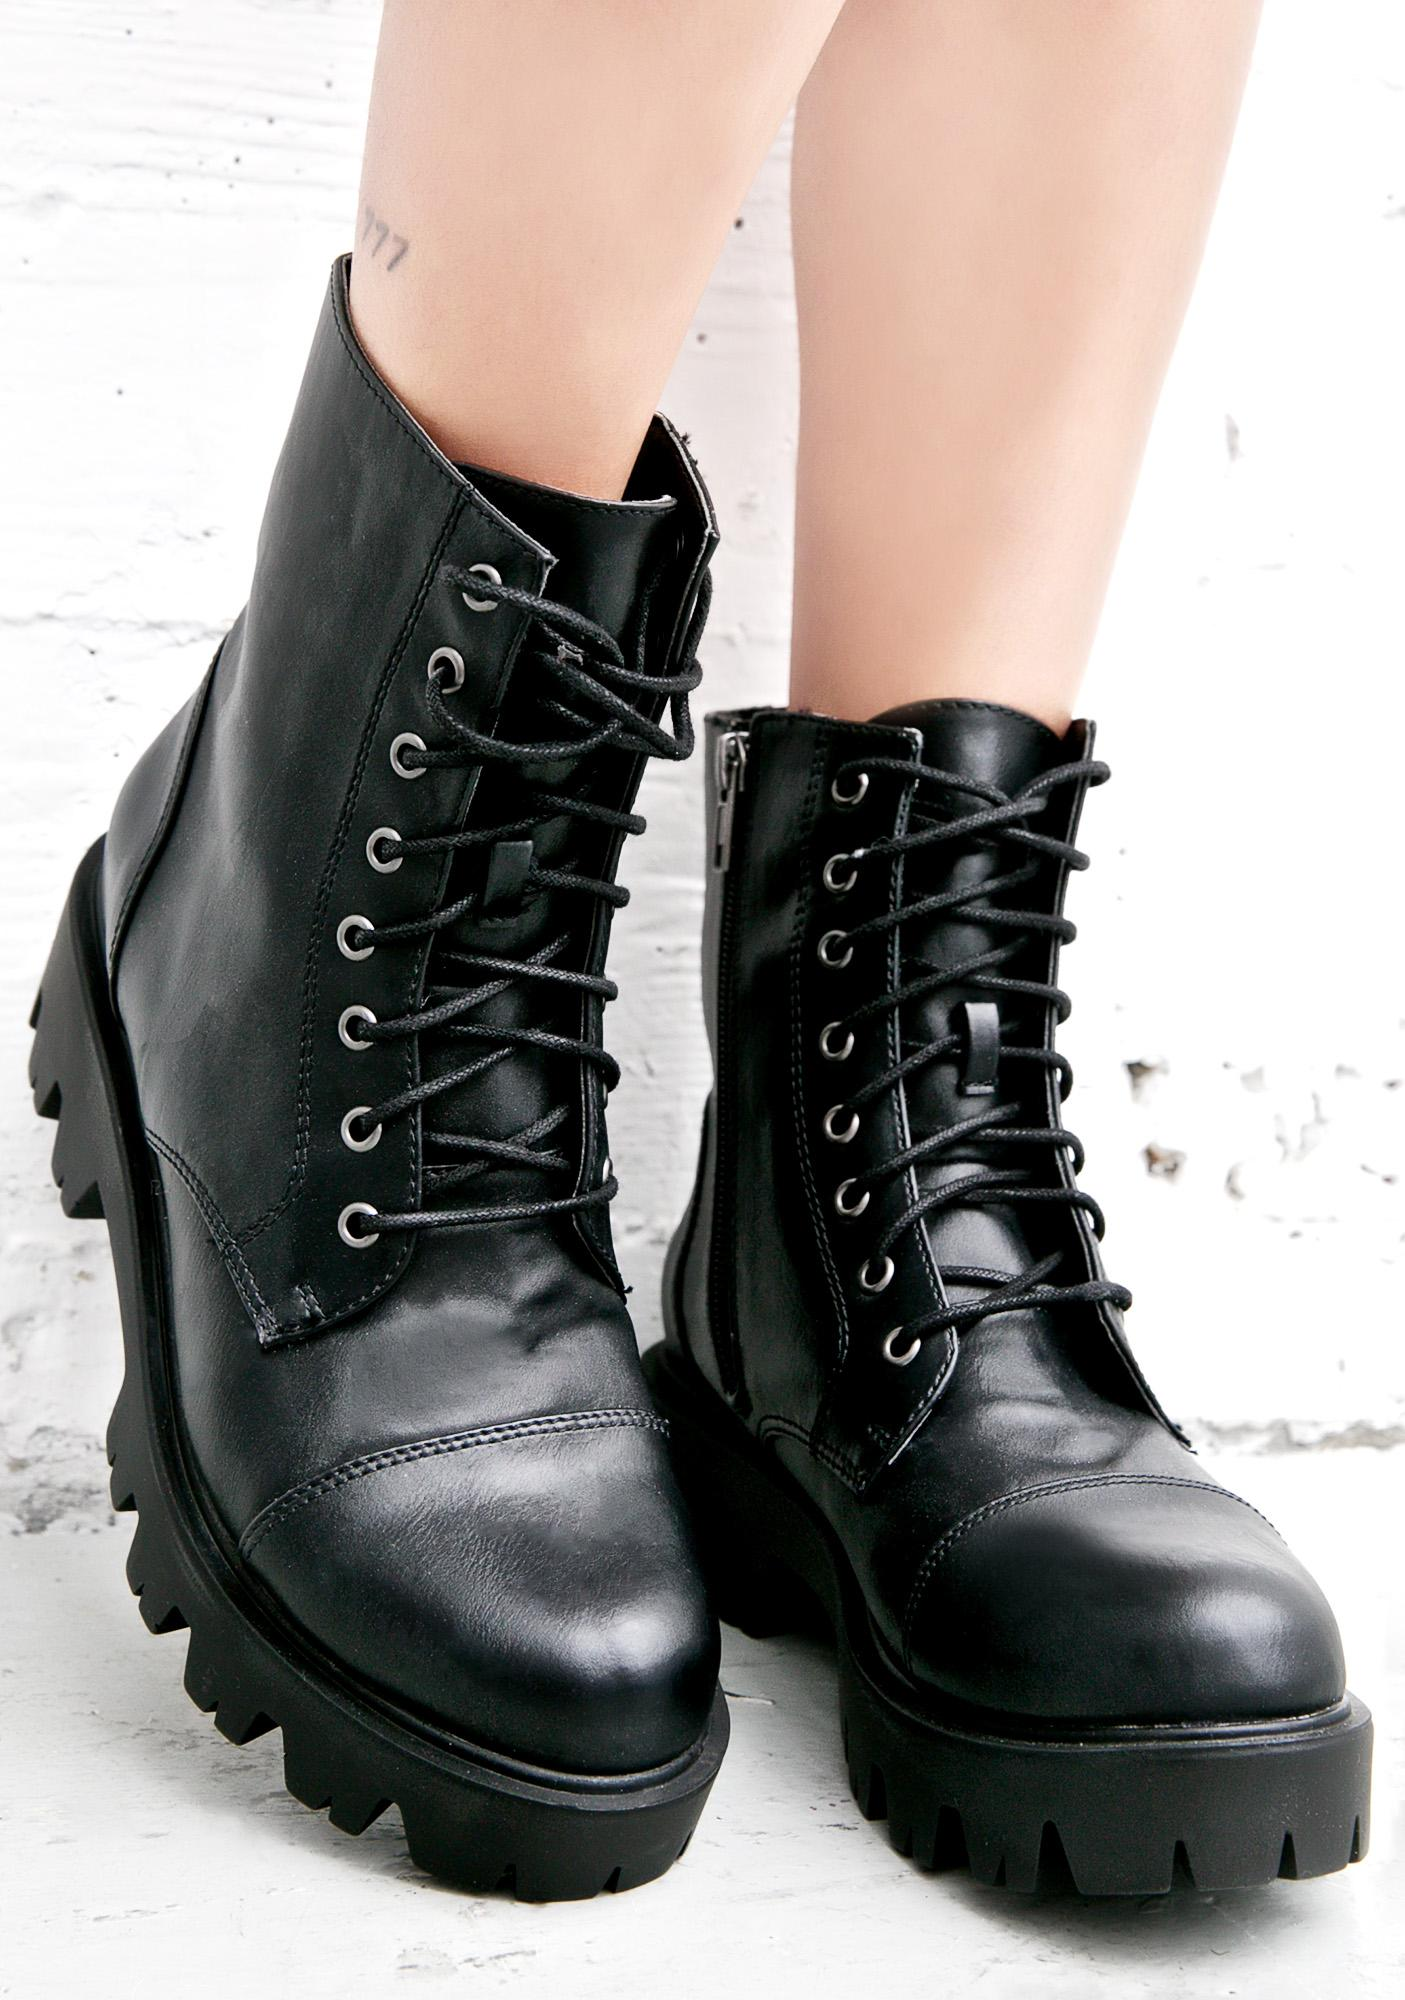 micro-studded leather biker ankle boots. mountain boots. bejewelled leather ankle boots. flat ankle boots with pearl bead buckle. leather biker ankle boots. flat leather ankle boots. leather mid-heel ankle boots. snakeskin print leather high-heel ankle boots. leather mid-heel ankle boots. new.